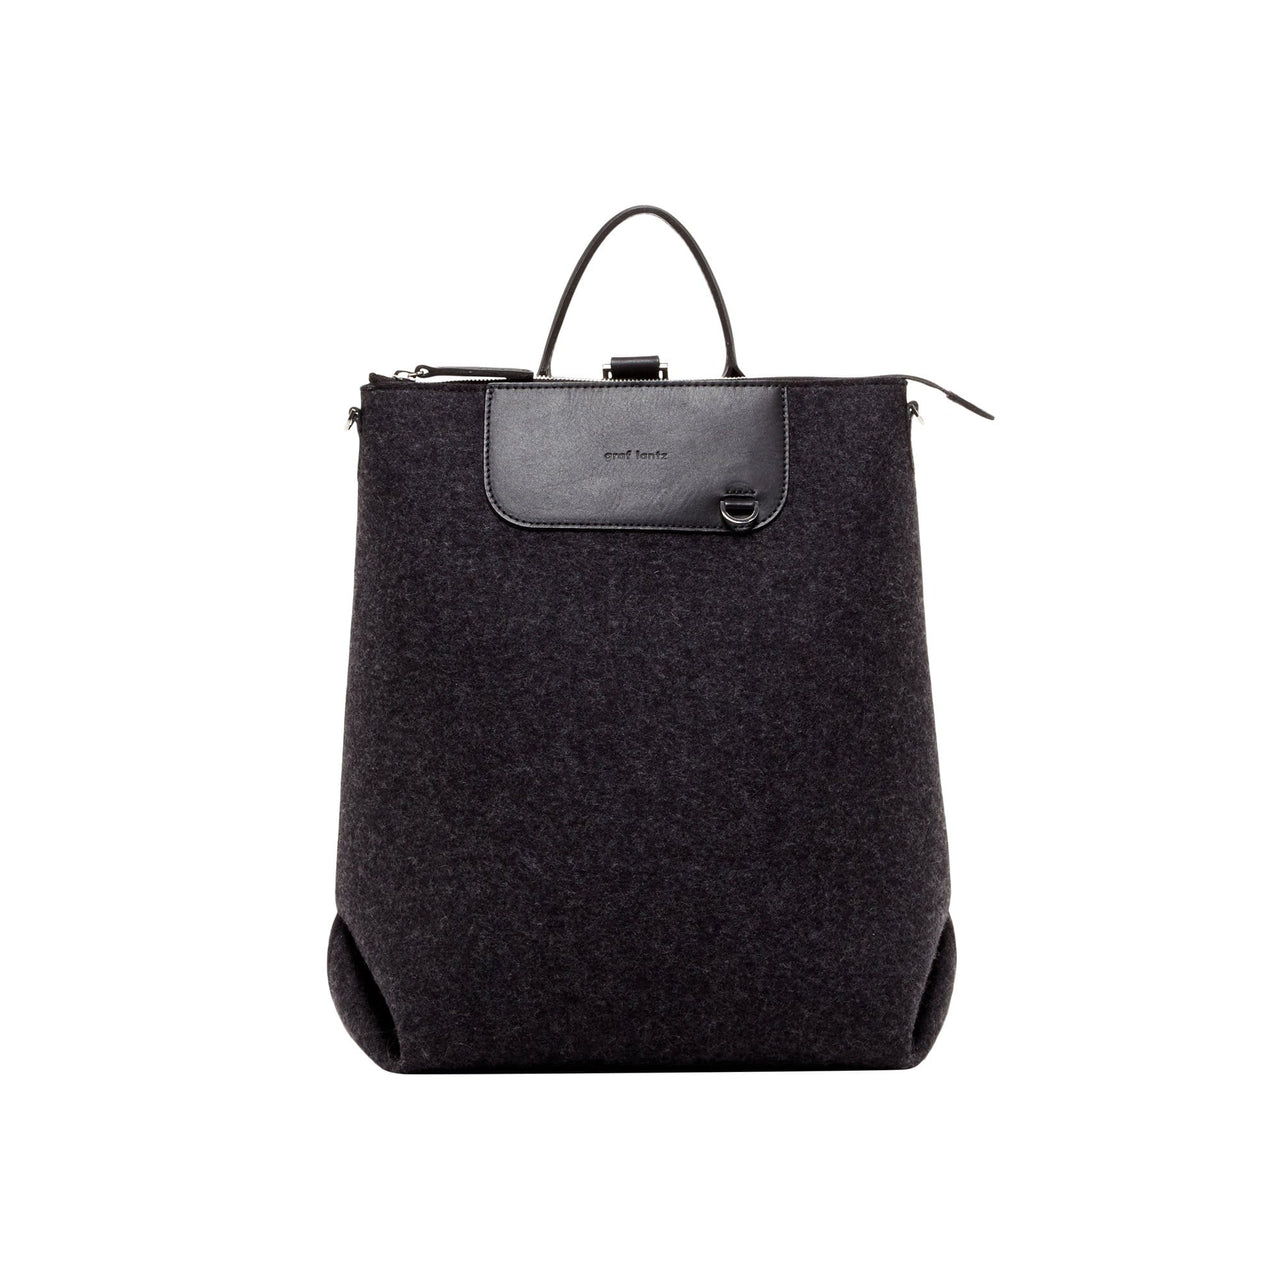 Graf Lantz Backpacks Charcoal Charcoal Bedford Felt Backpack